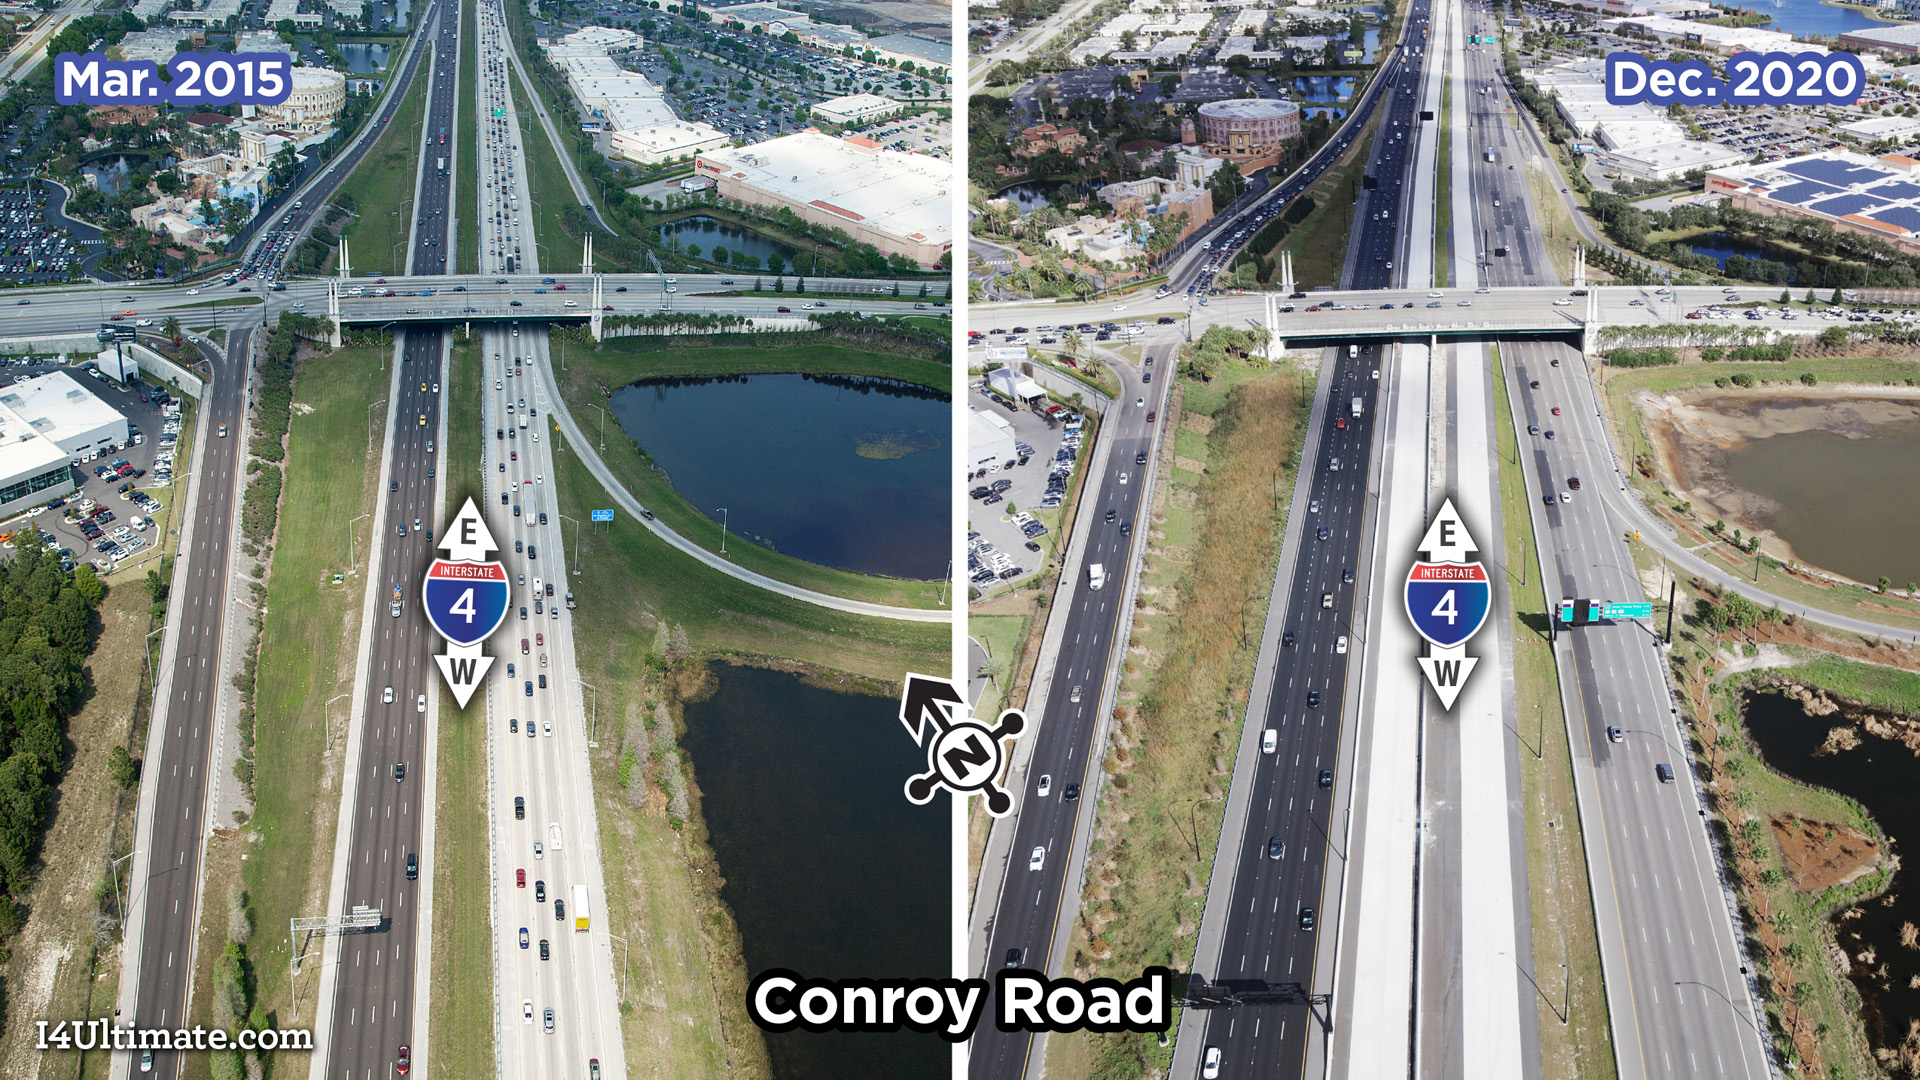 4738-I4Ultimate-GUL-campaign-images-20210212-05-Conroy-Road